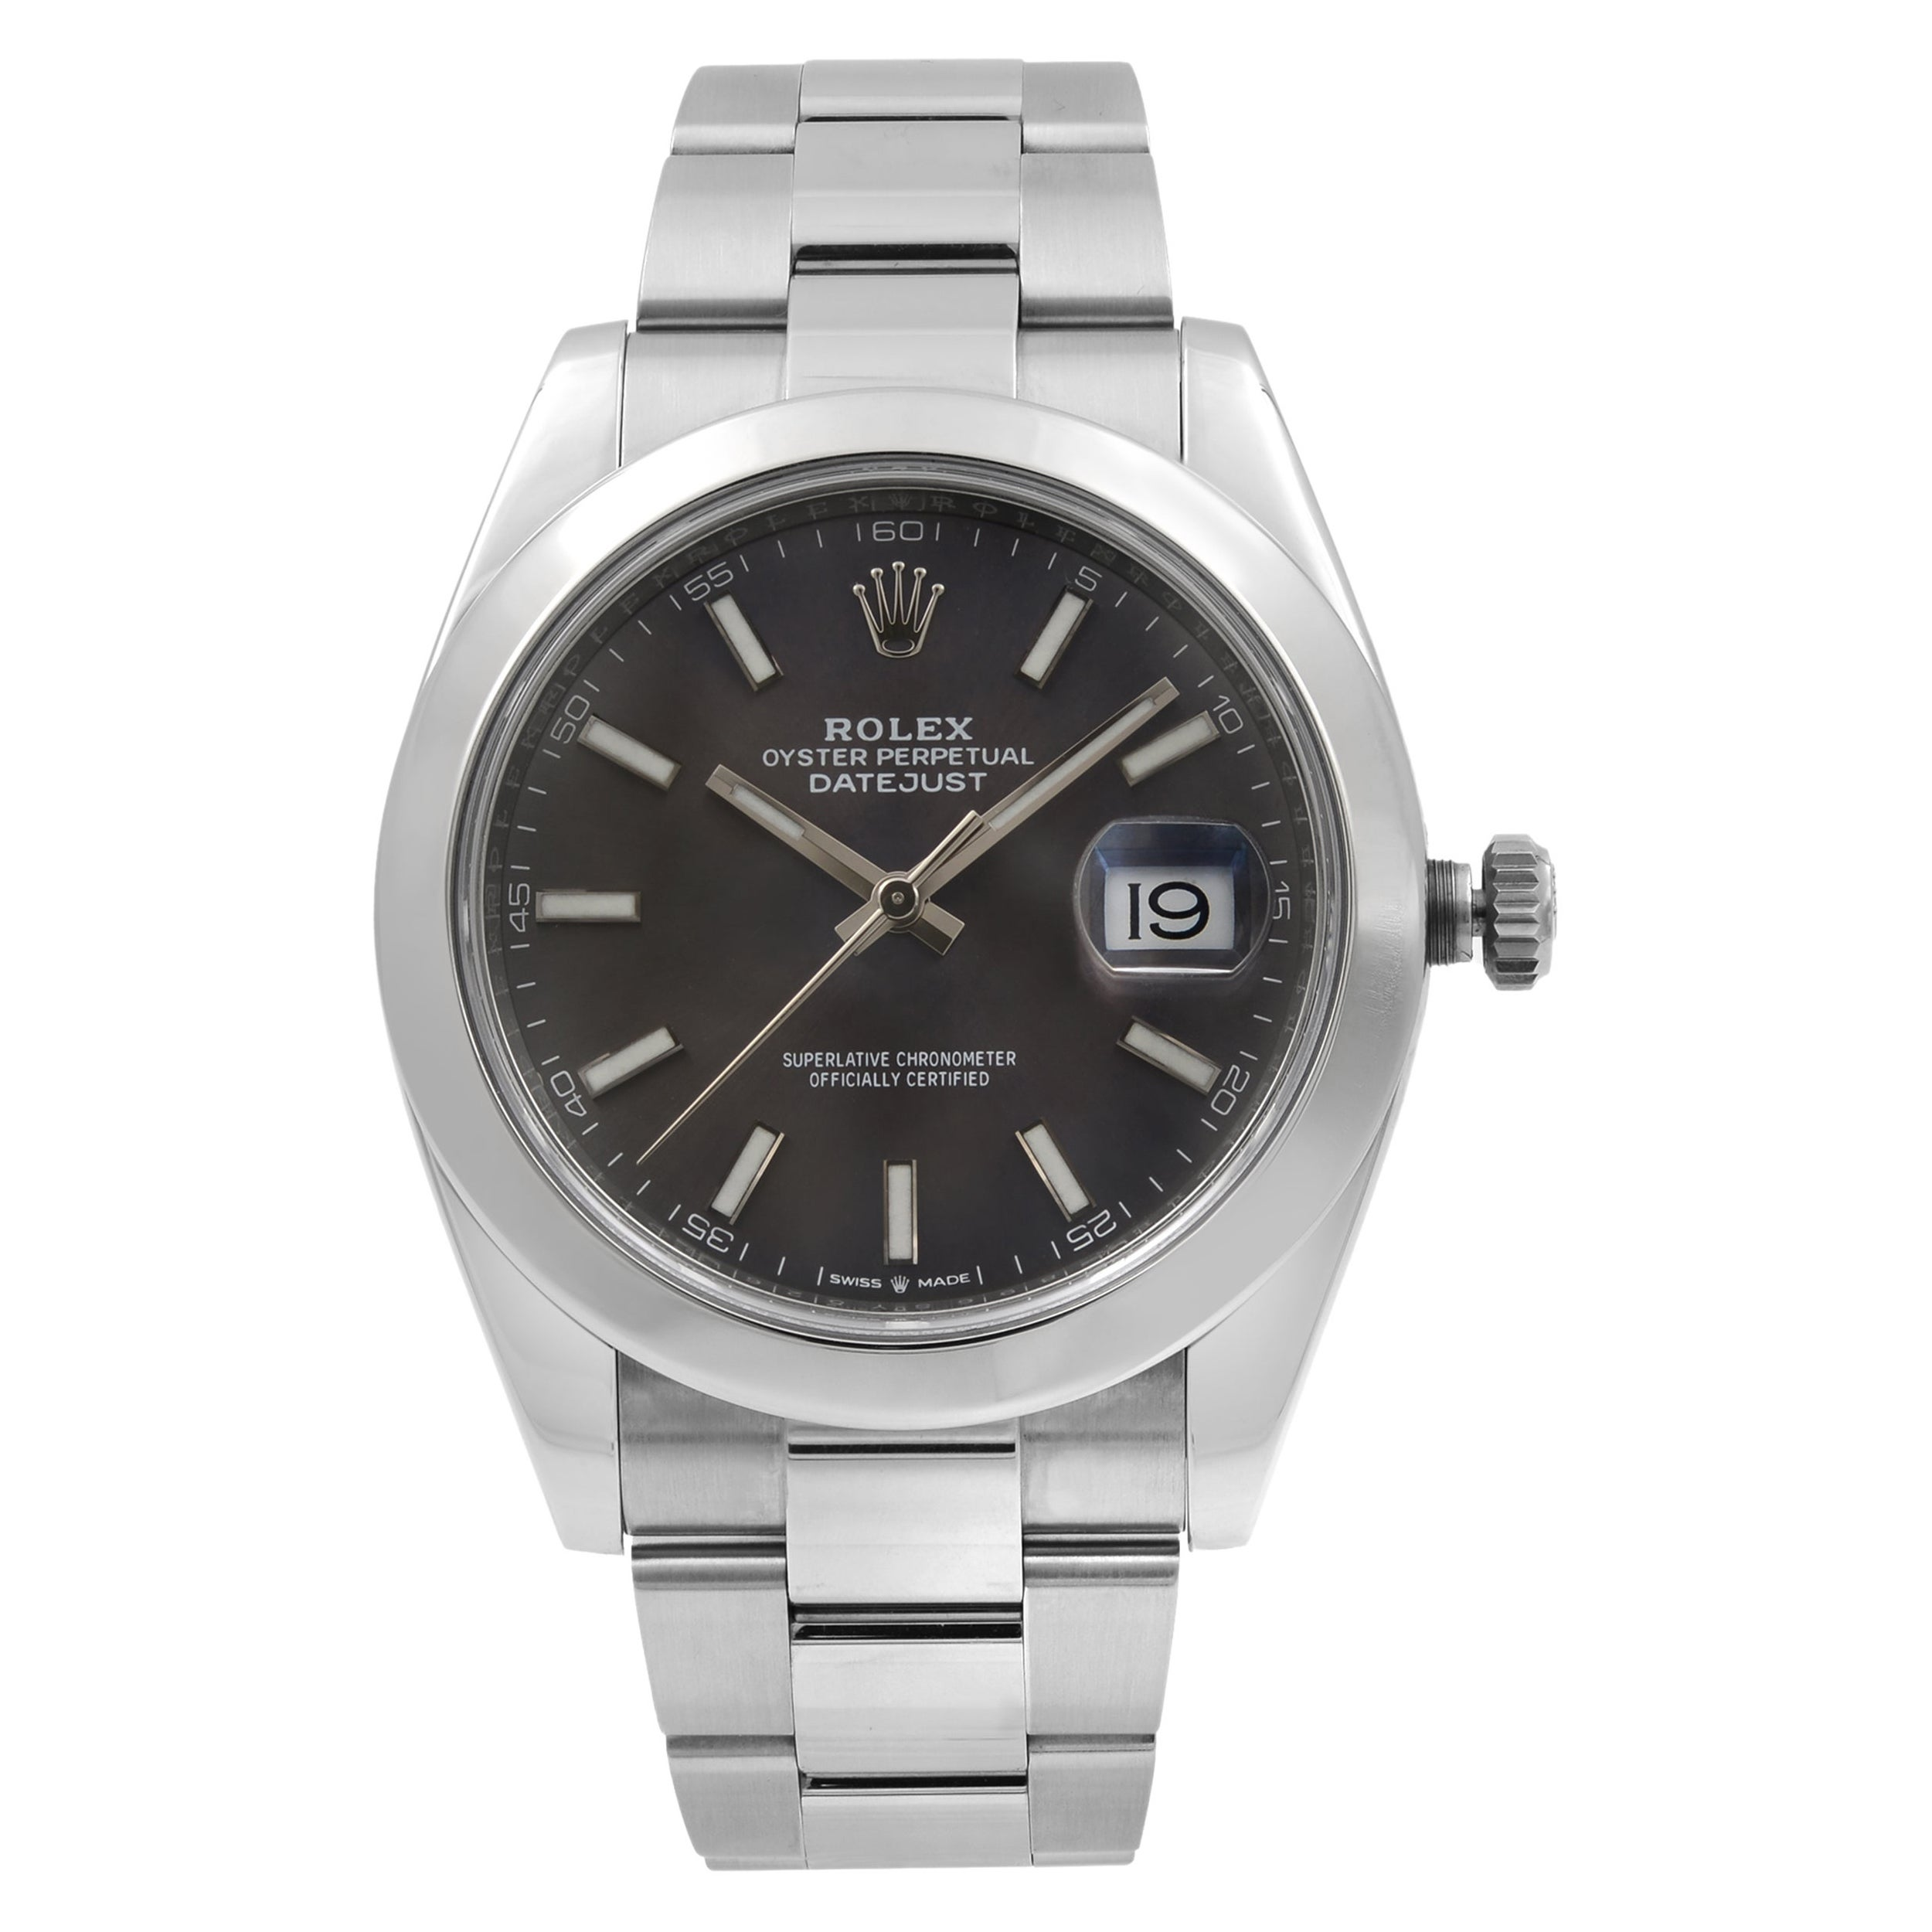 Rolex Datejust 41 Steel Dark Rhodium Dial Automatic Men's Watch 126300